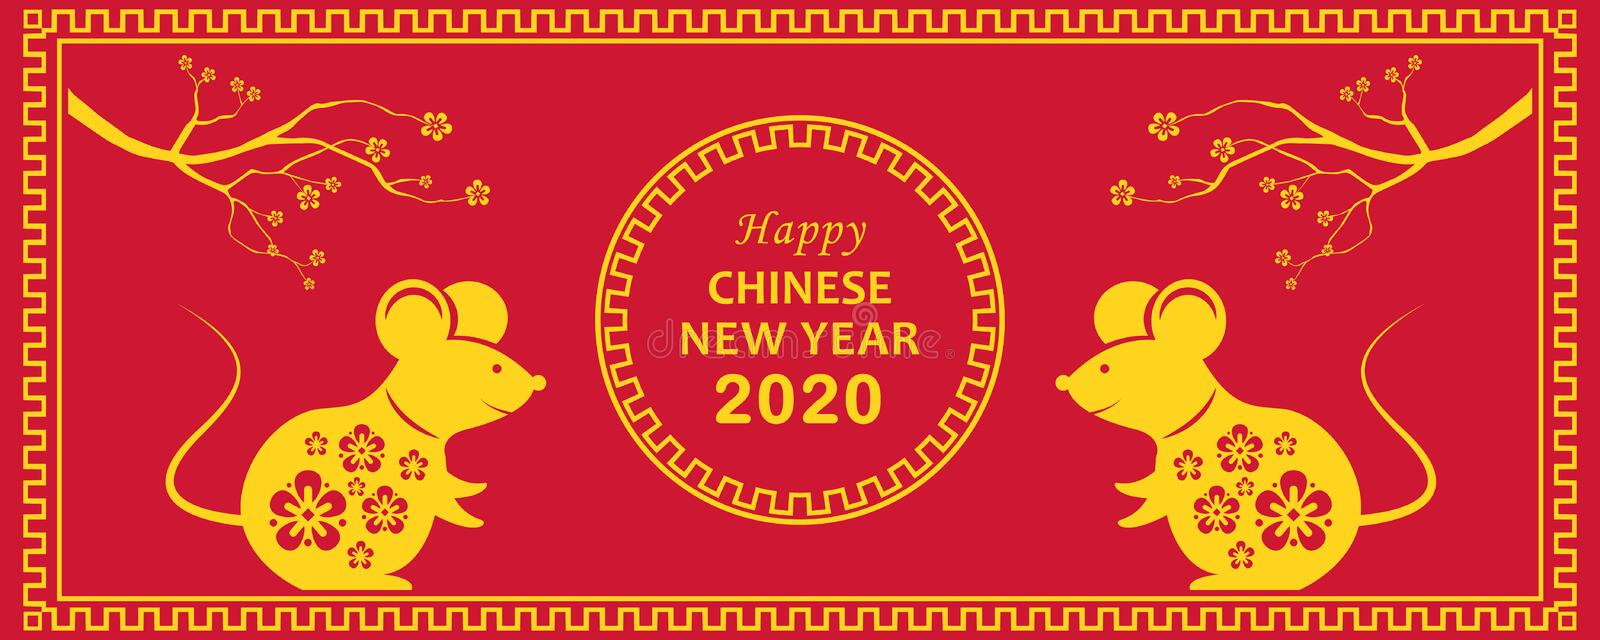 Chinese happy new year 2020 landscape banner illustration. Vector stock photography